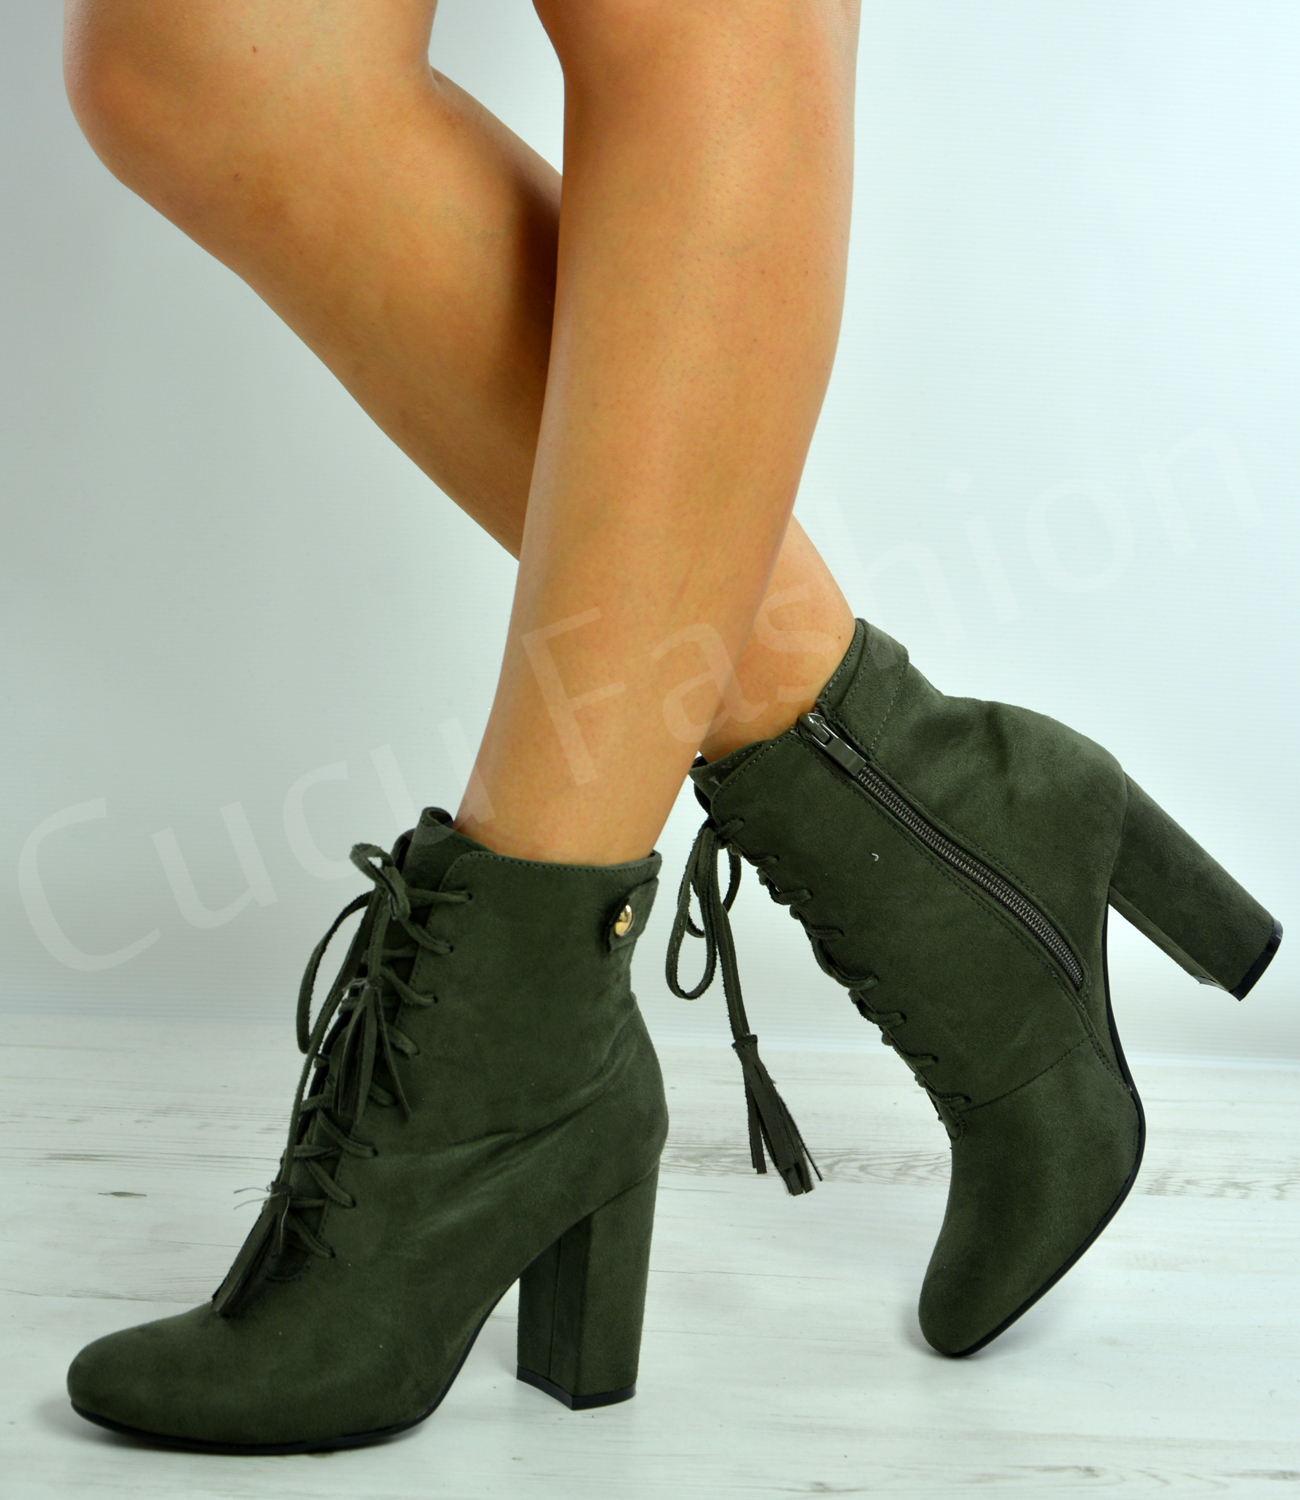 0469c73dc295 New Womens Ankle Boots Ladies High Block Heel Lace Up Fringe Shoes .